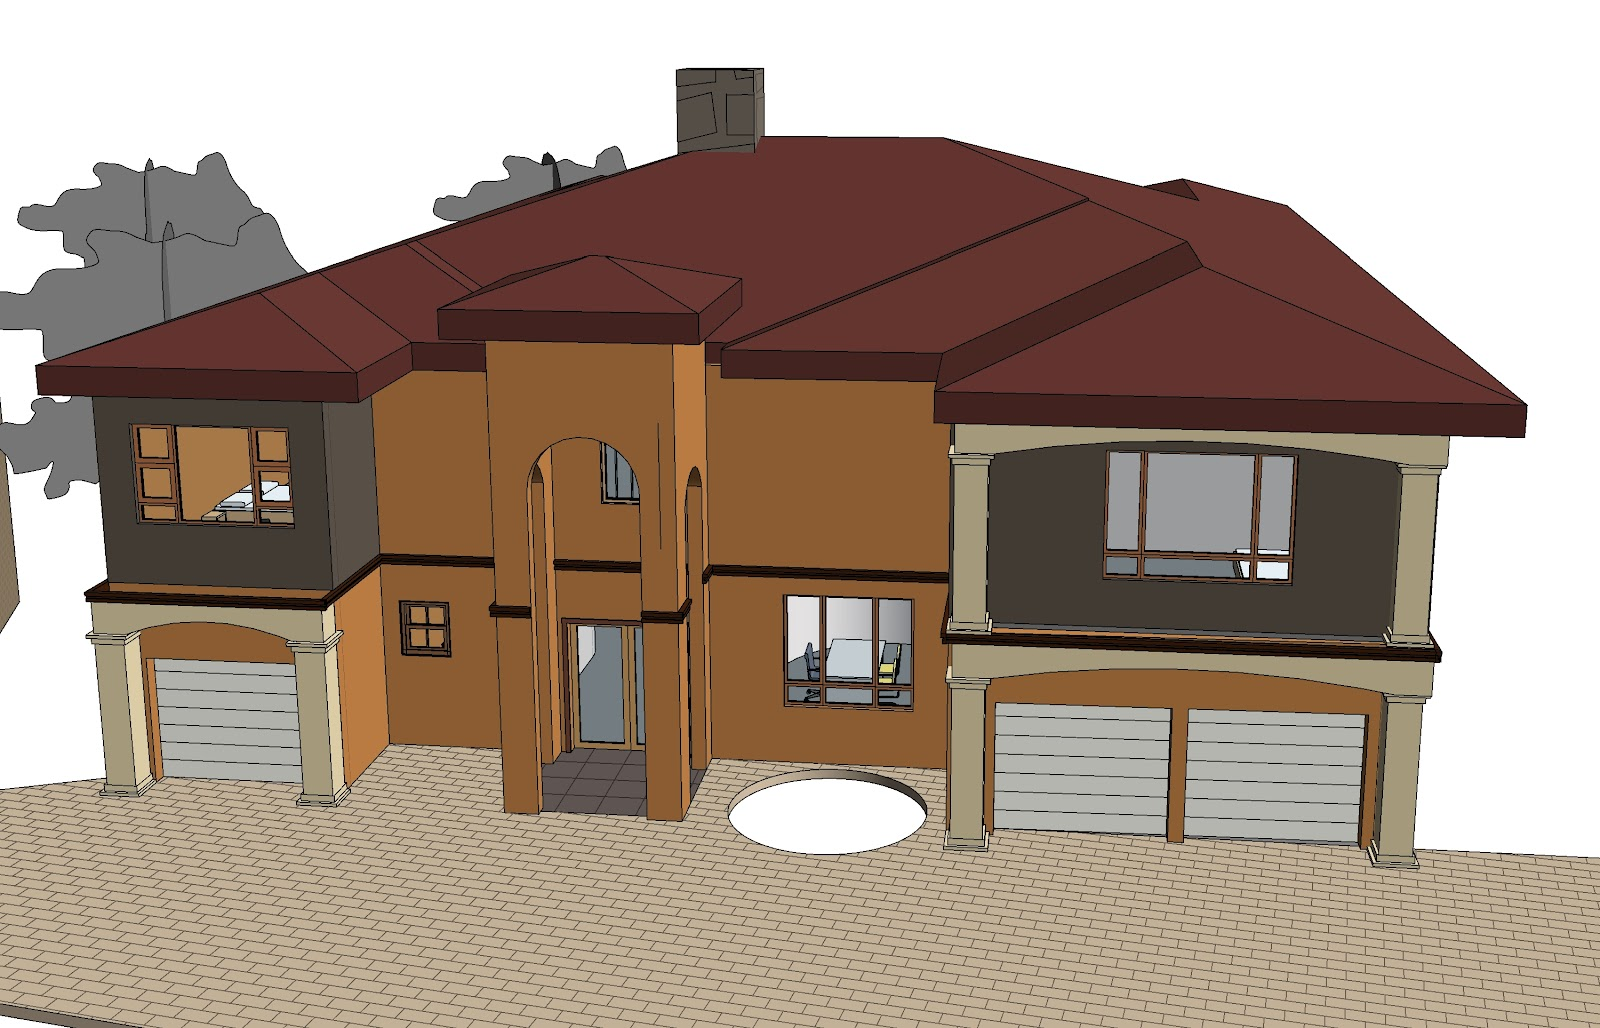 Kabu concepts Tuscan houses pictures in south africa